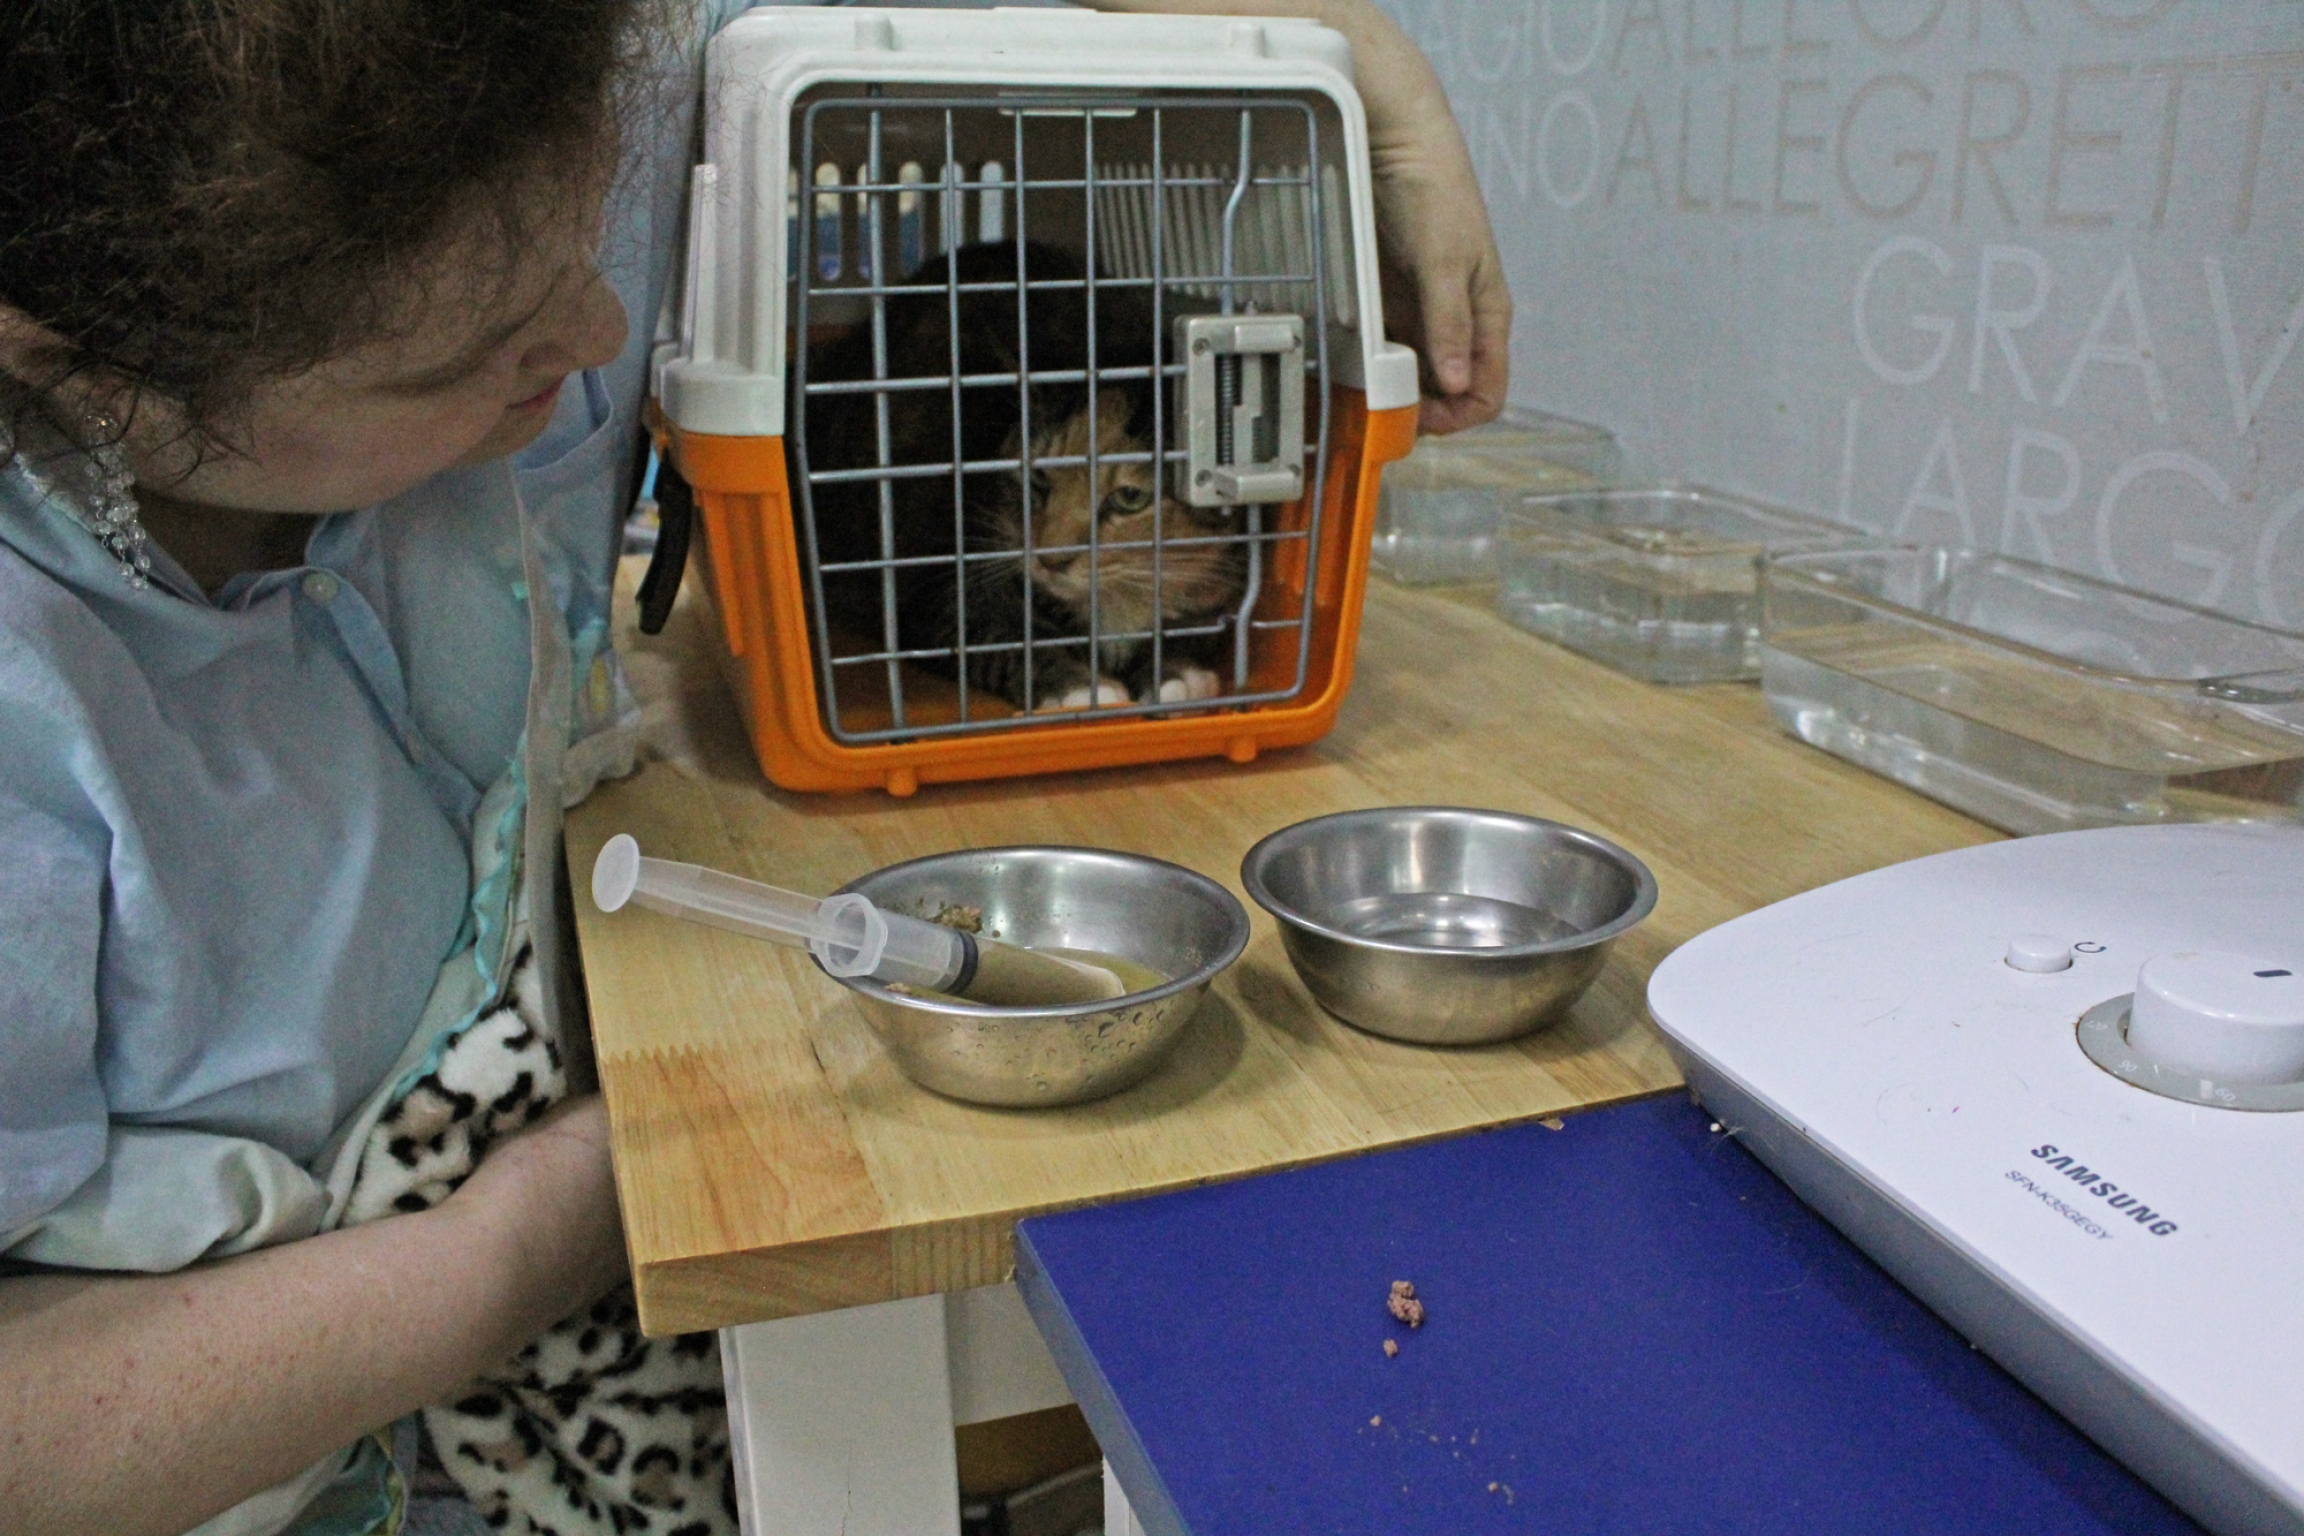 a woman looks at a cat in a cage near two silver bowls holding a syringe